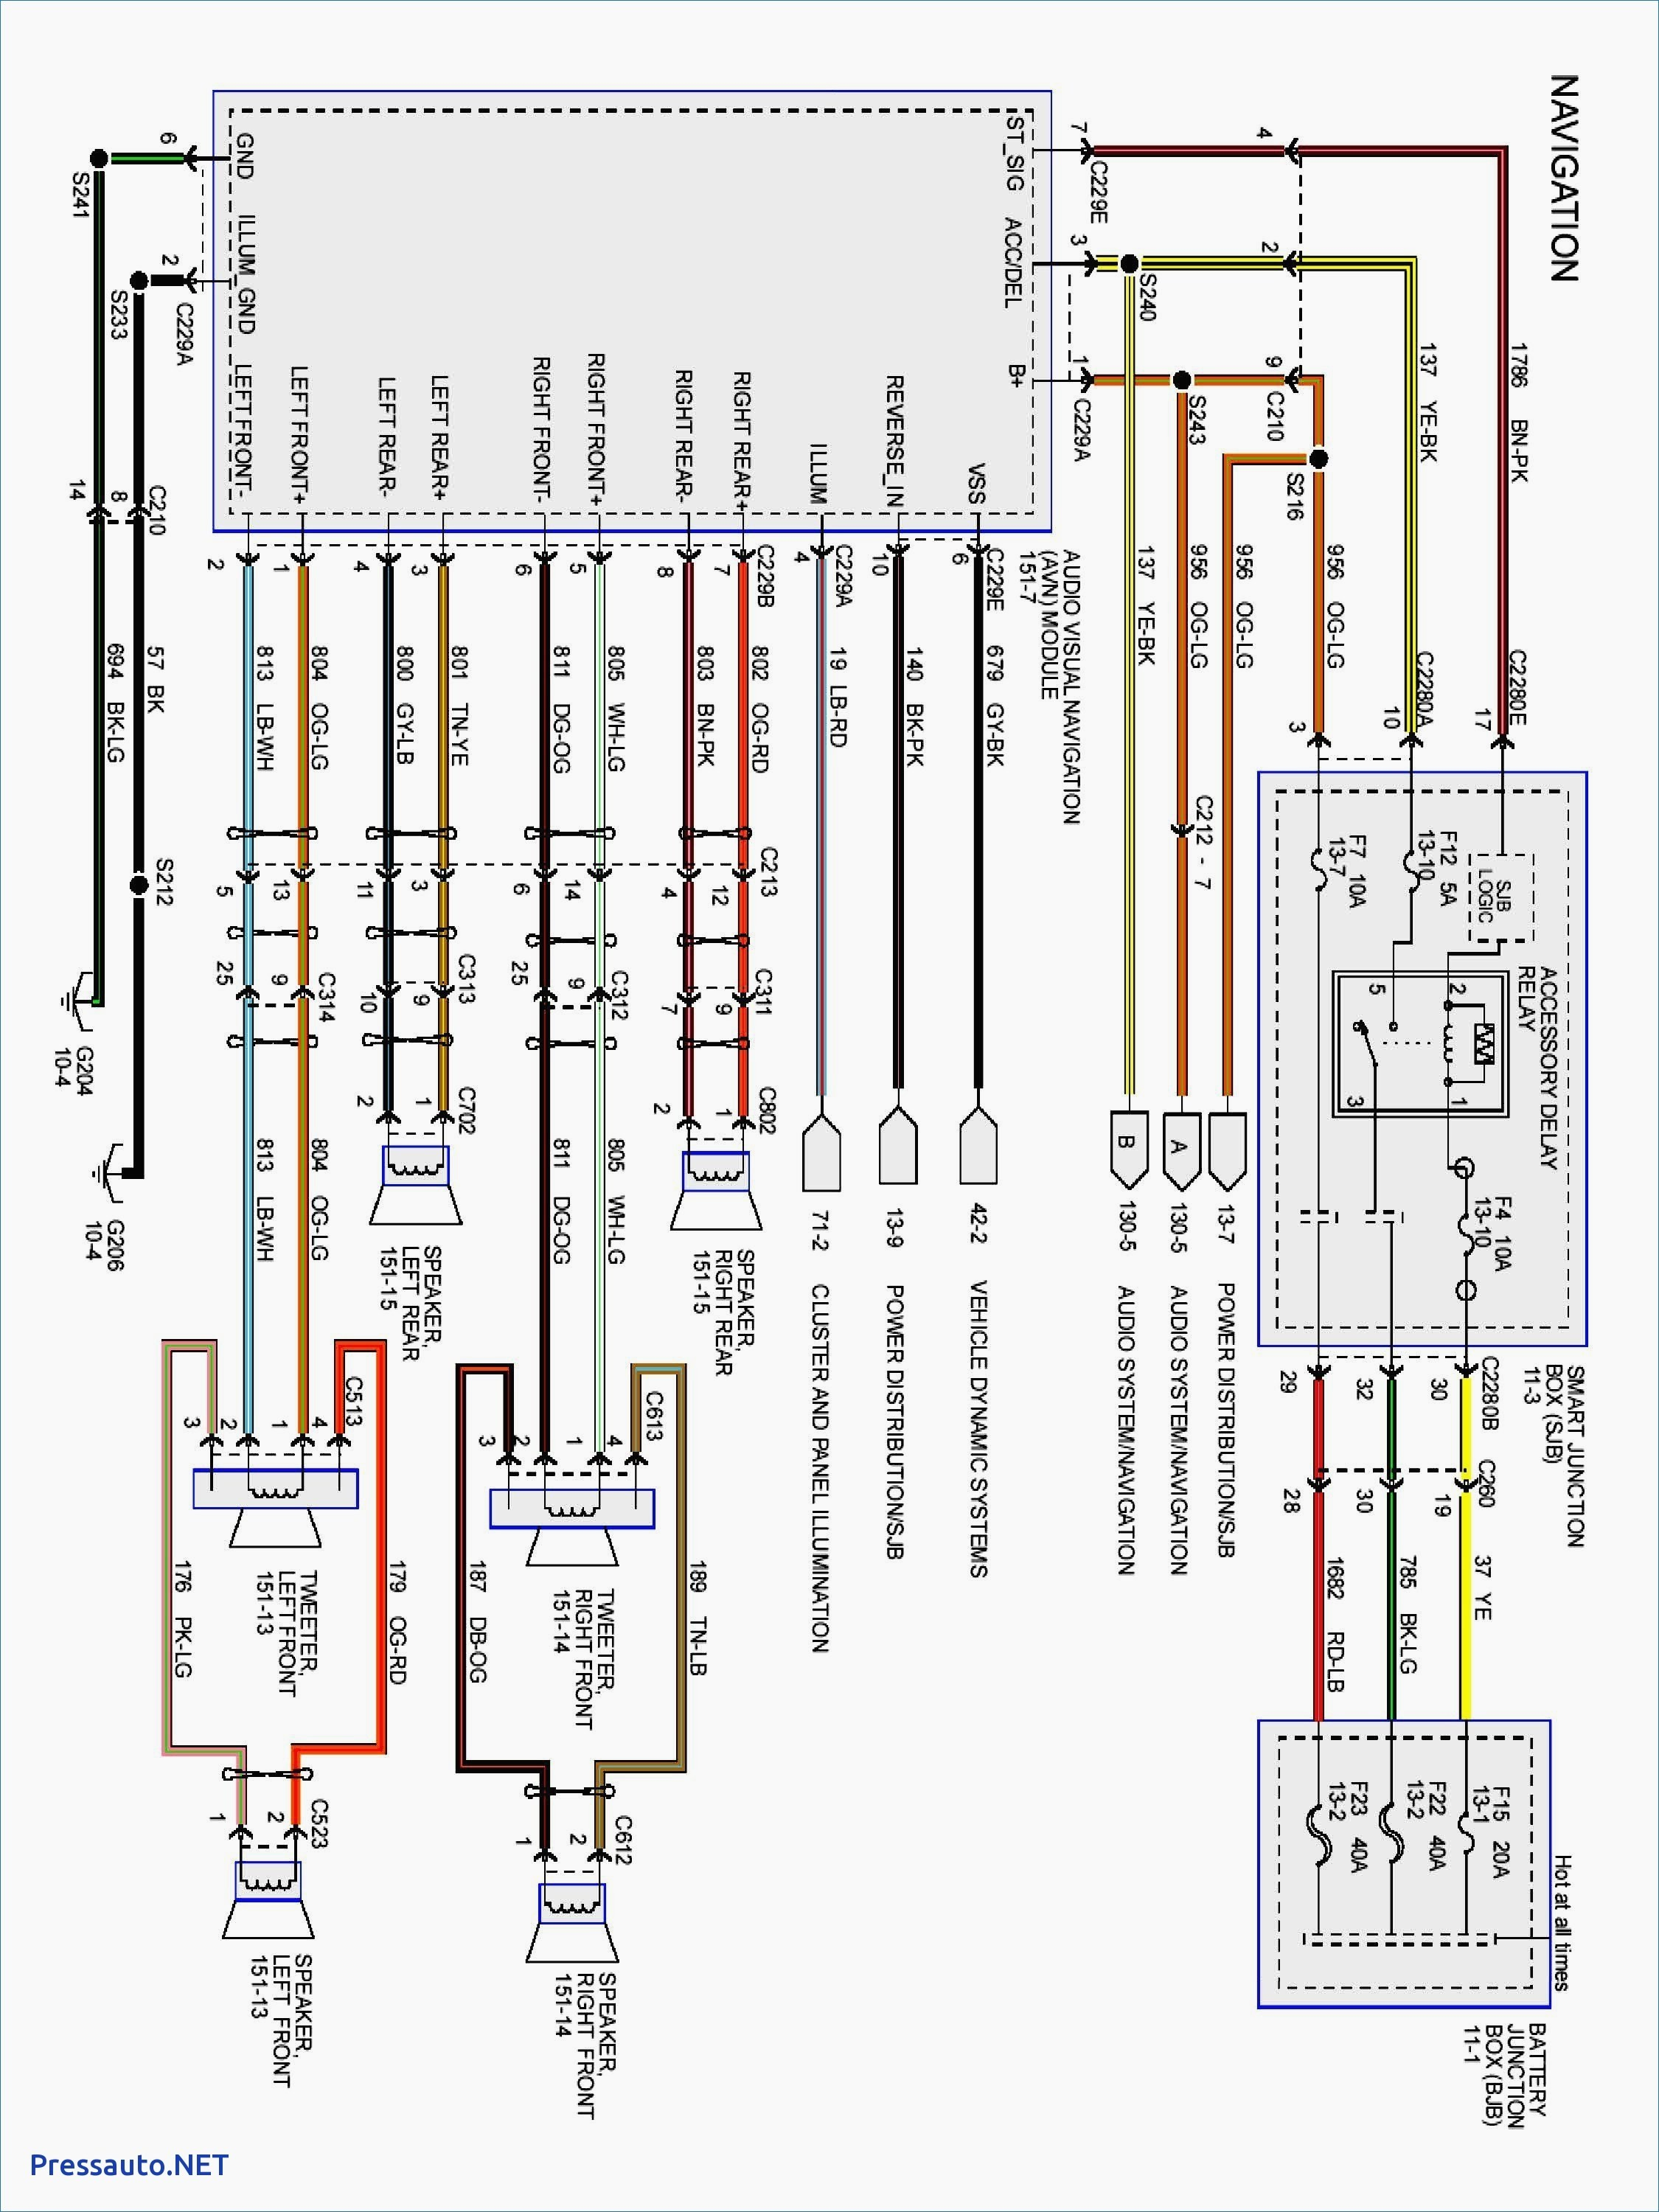 Chrysler Radio Wiring Diagram from detoxicrecenze.com